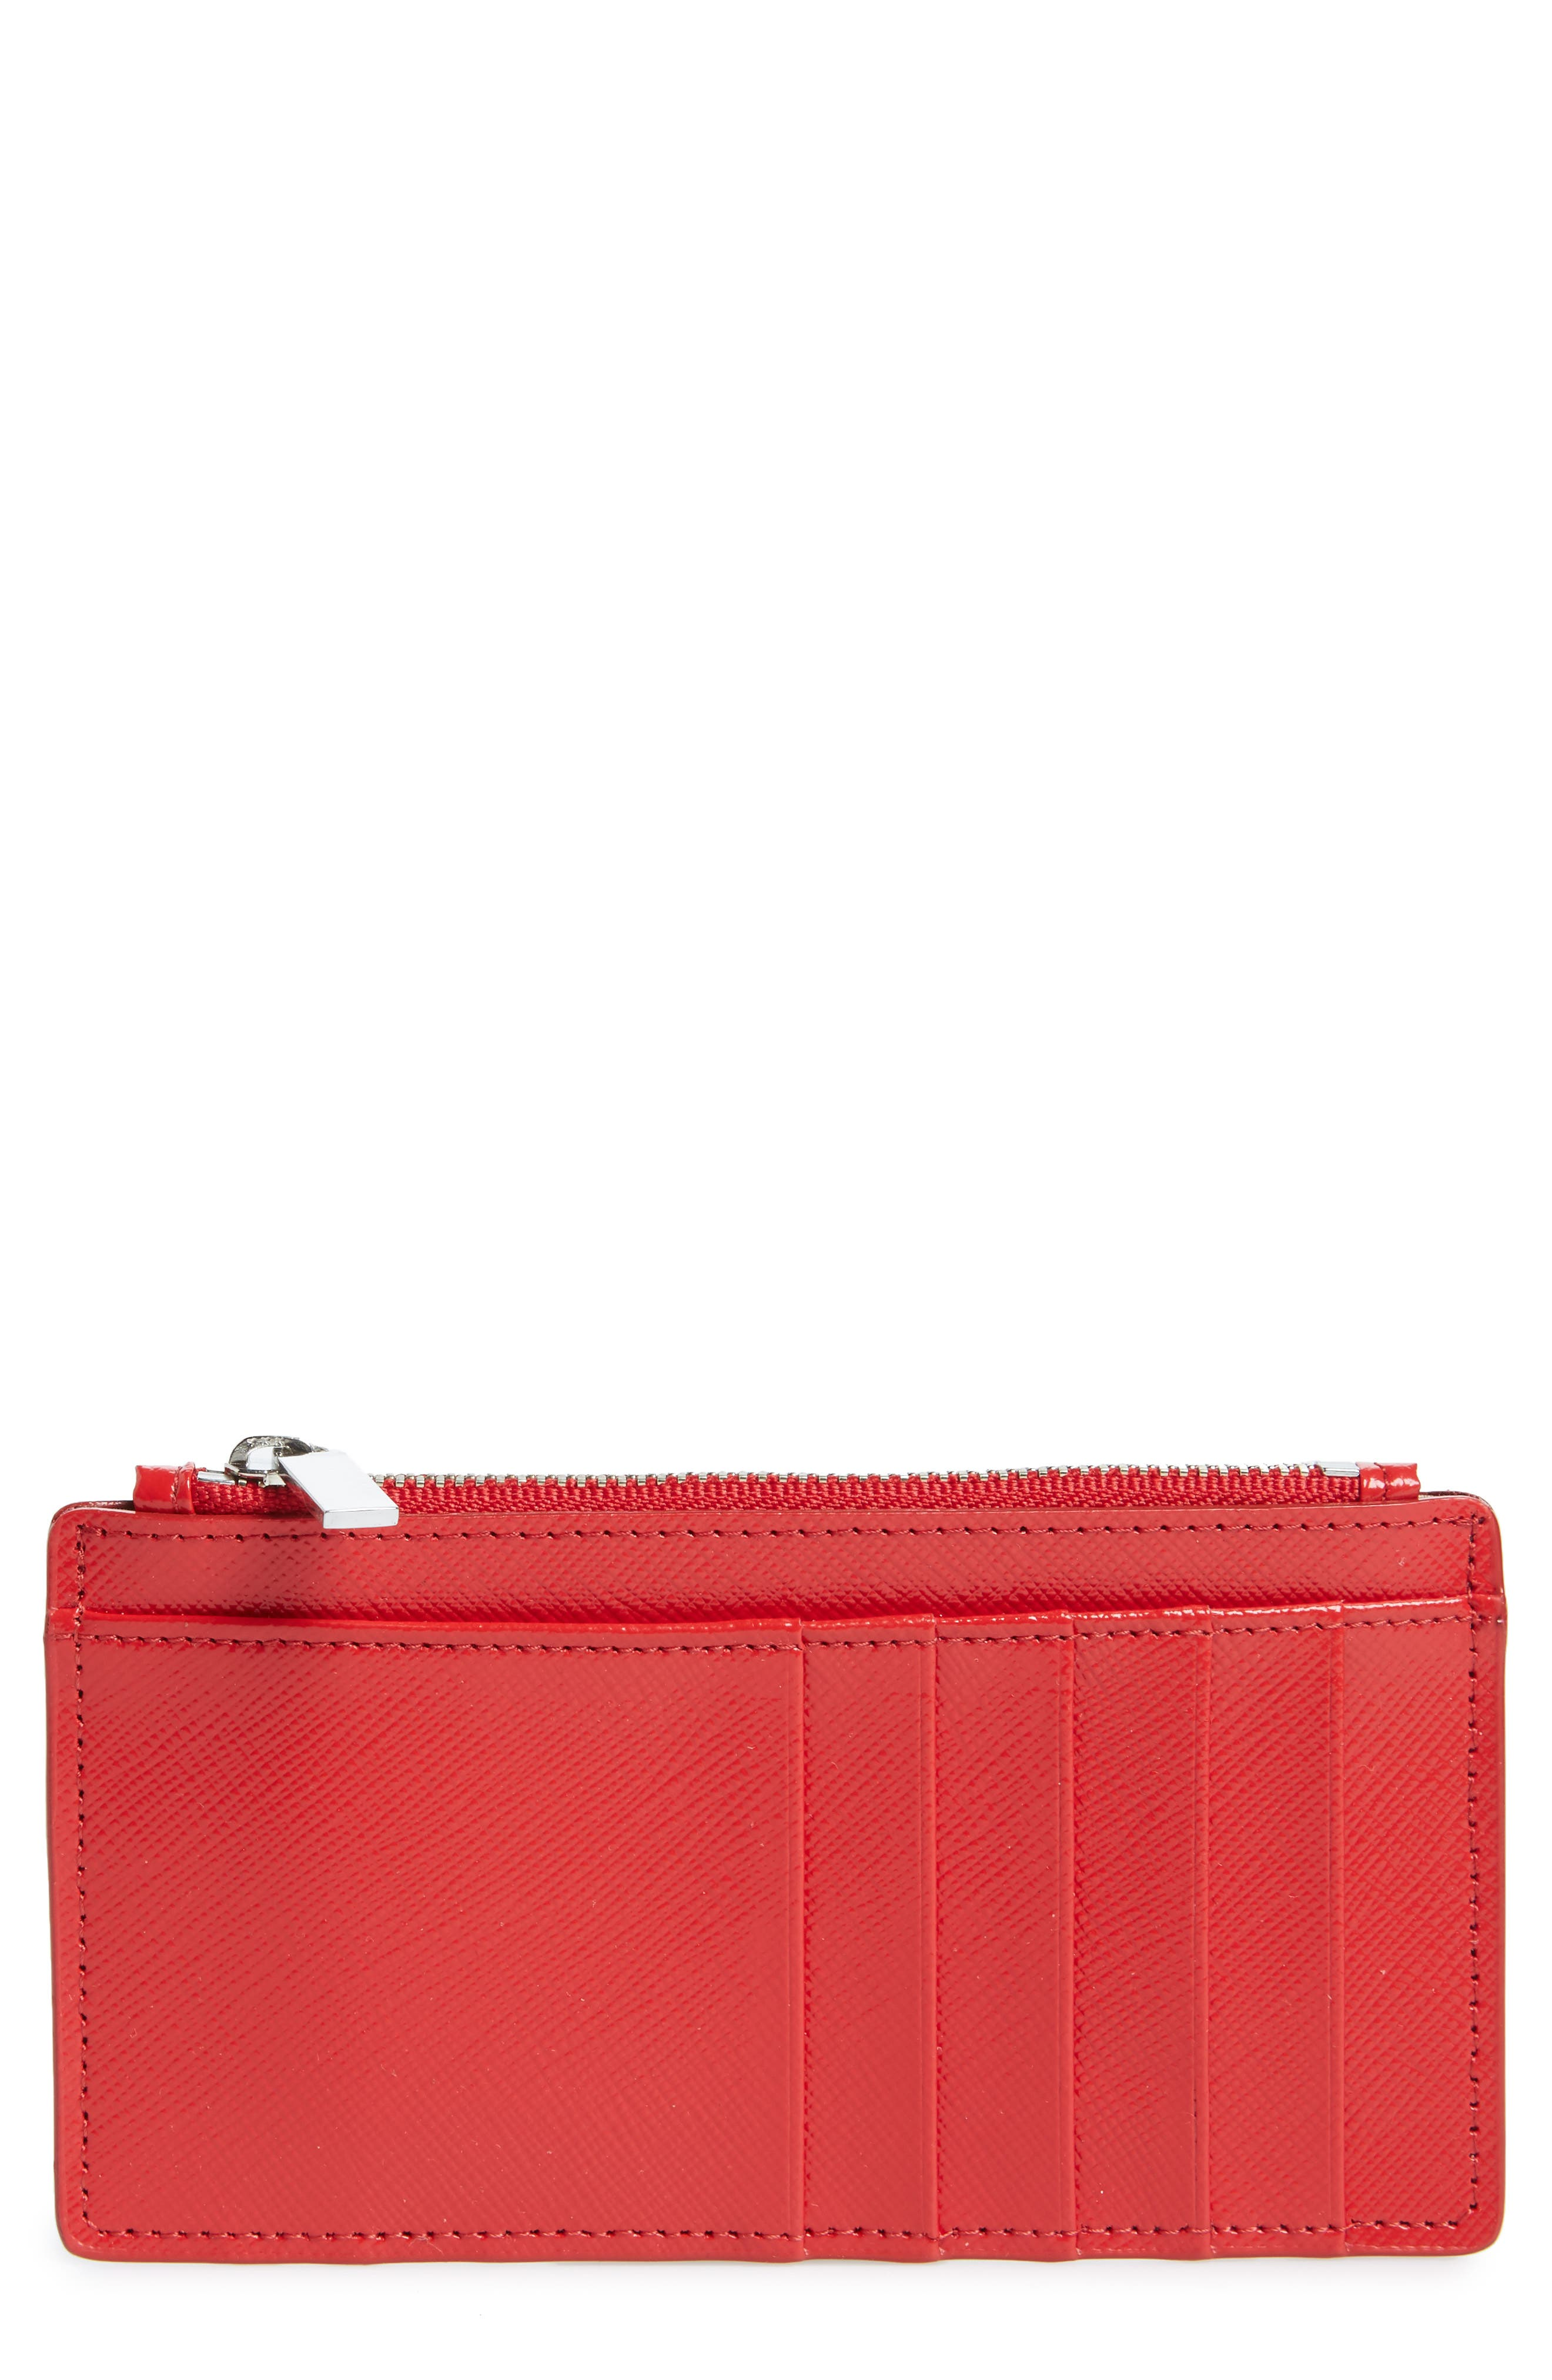 Leather Card Case,                         Main,                         color, Red Ribbon